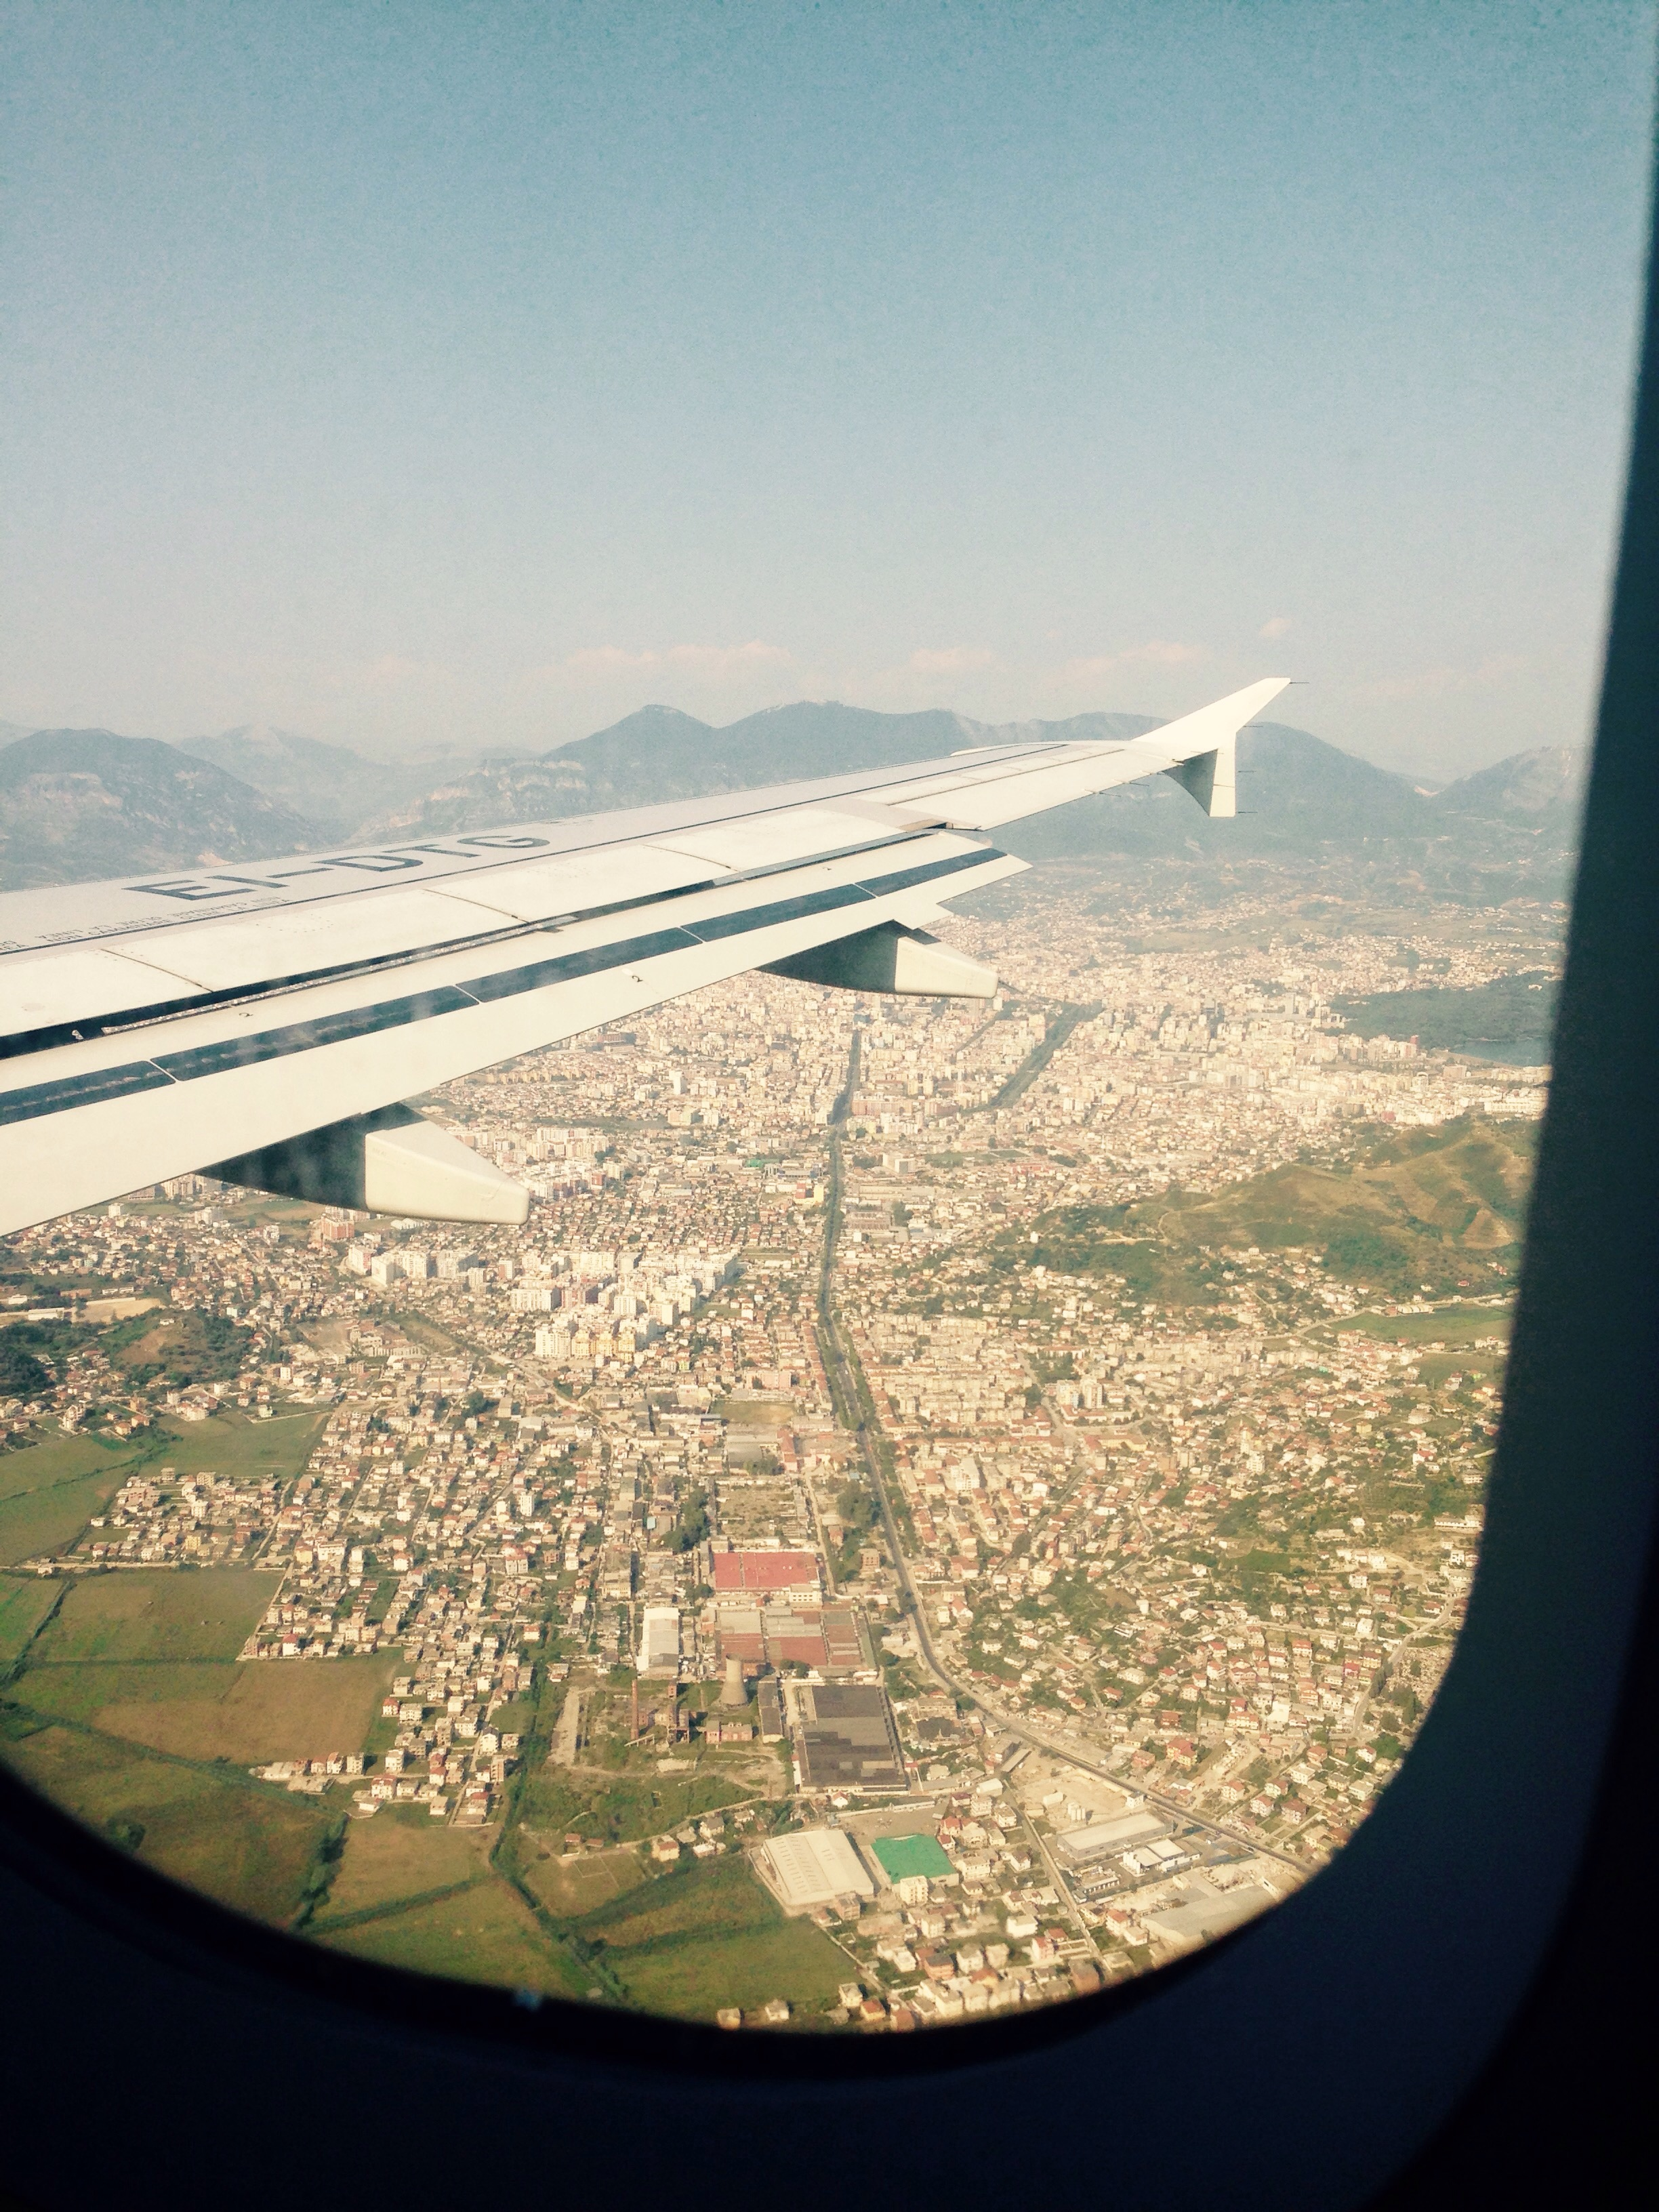 Making our decent into Tirana.